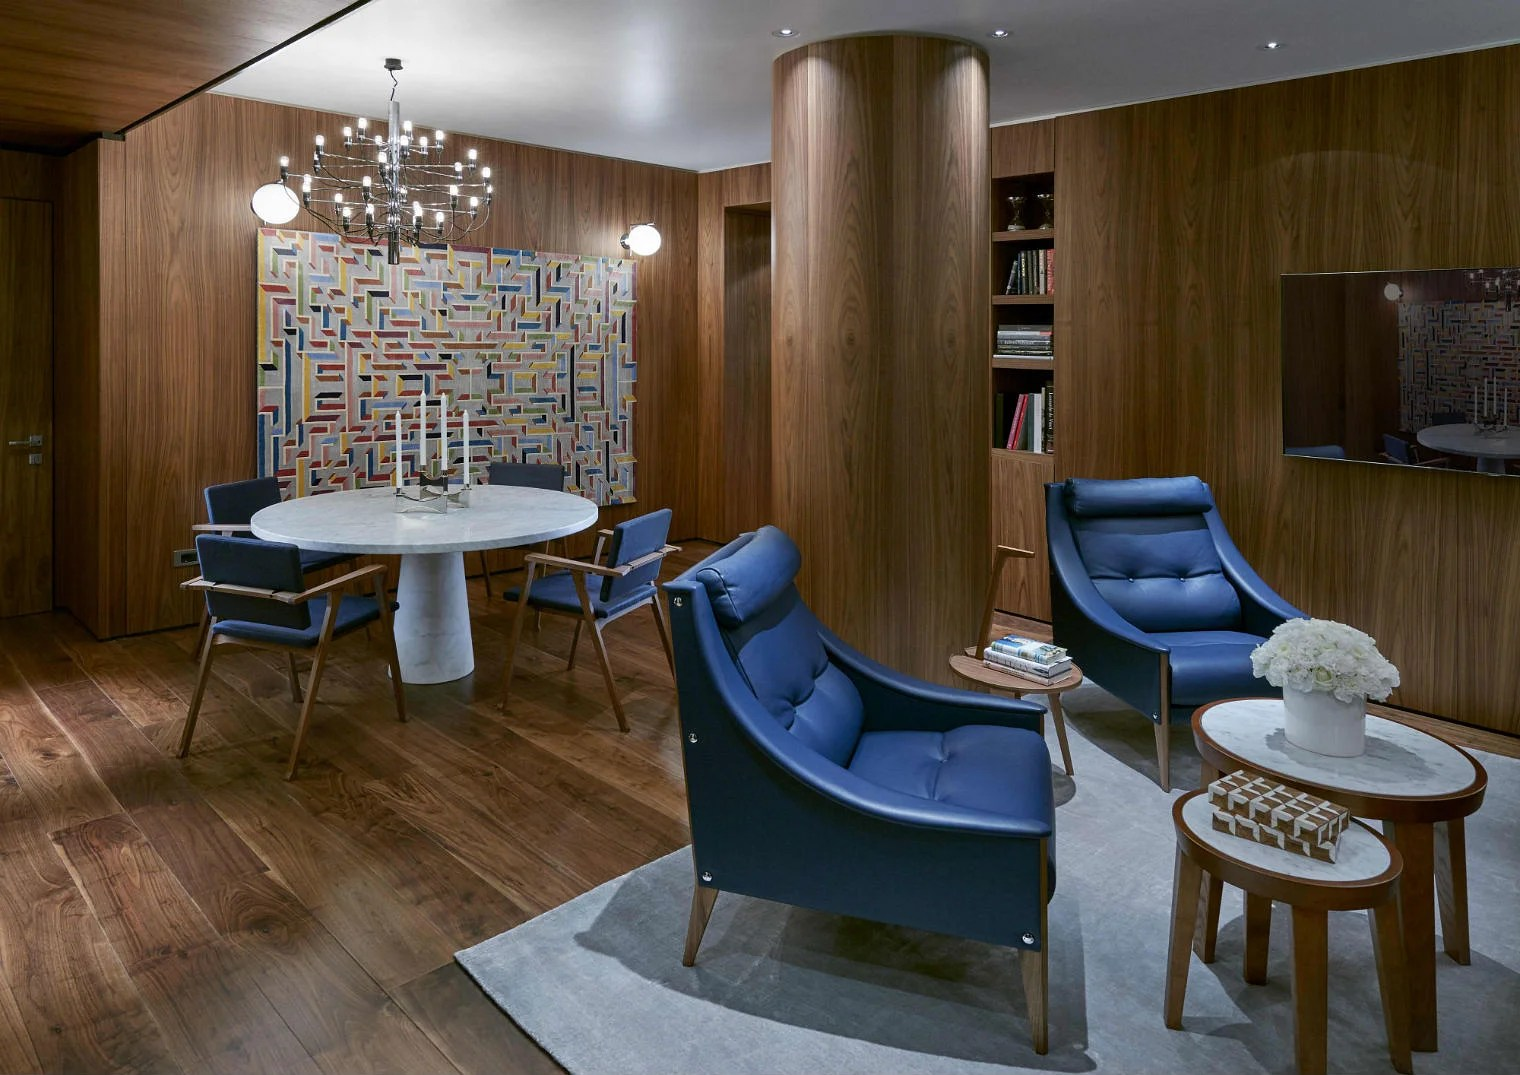 Amazing hotel rooms inspired by Piero Fornasetti and Gio